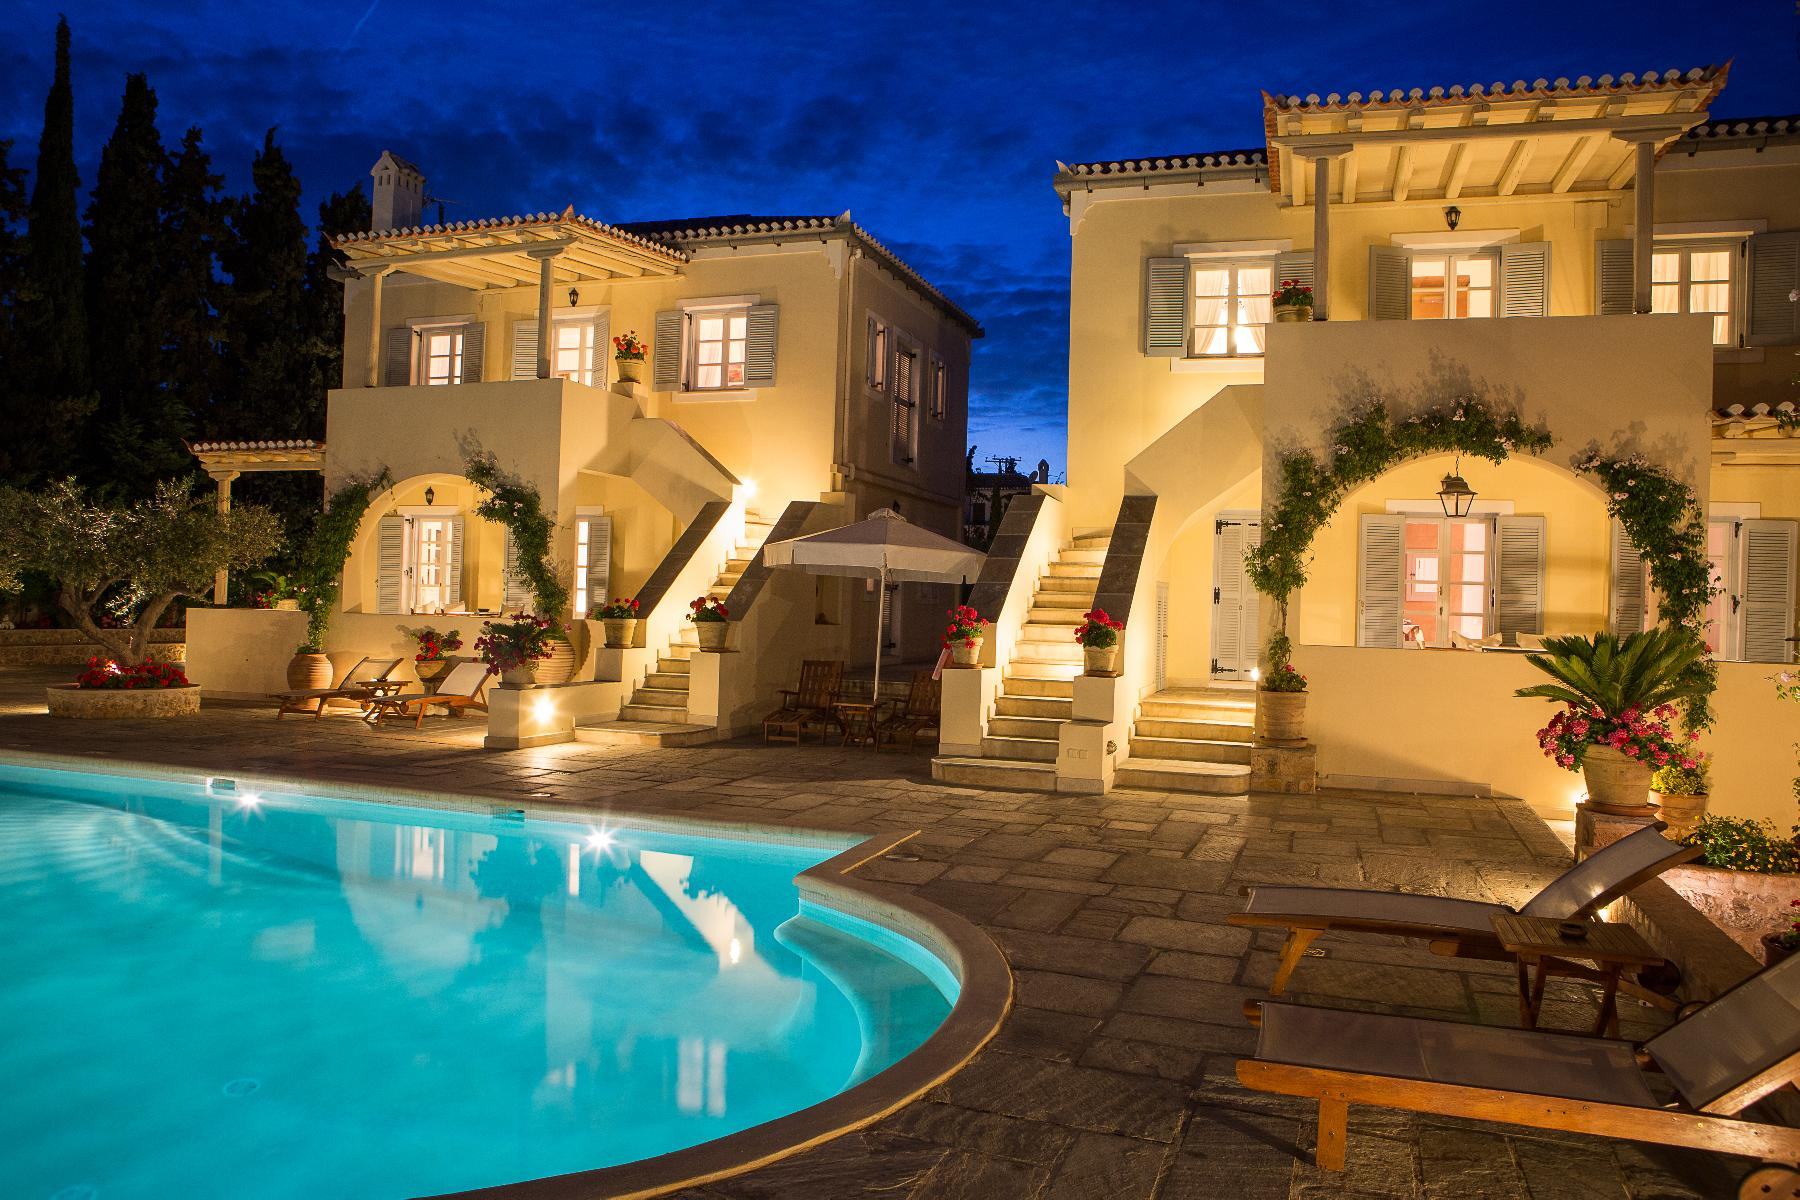 Greece - Spetses Villa Nika